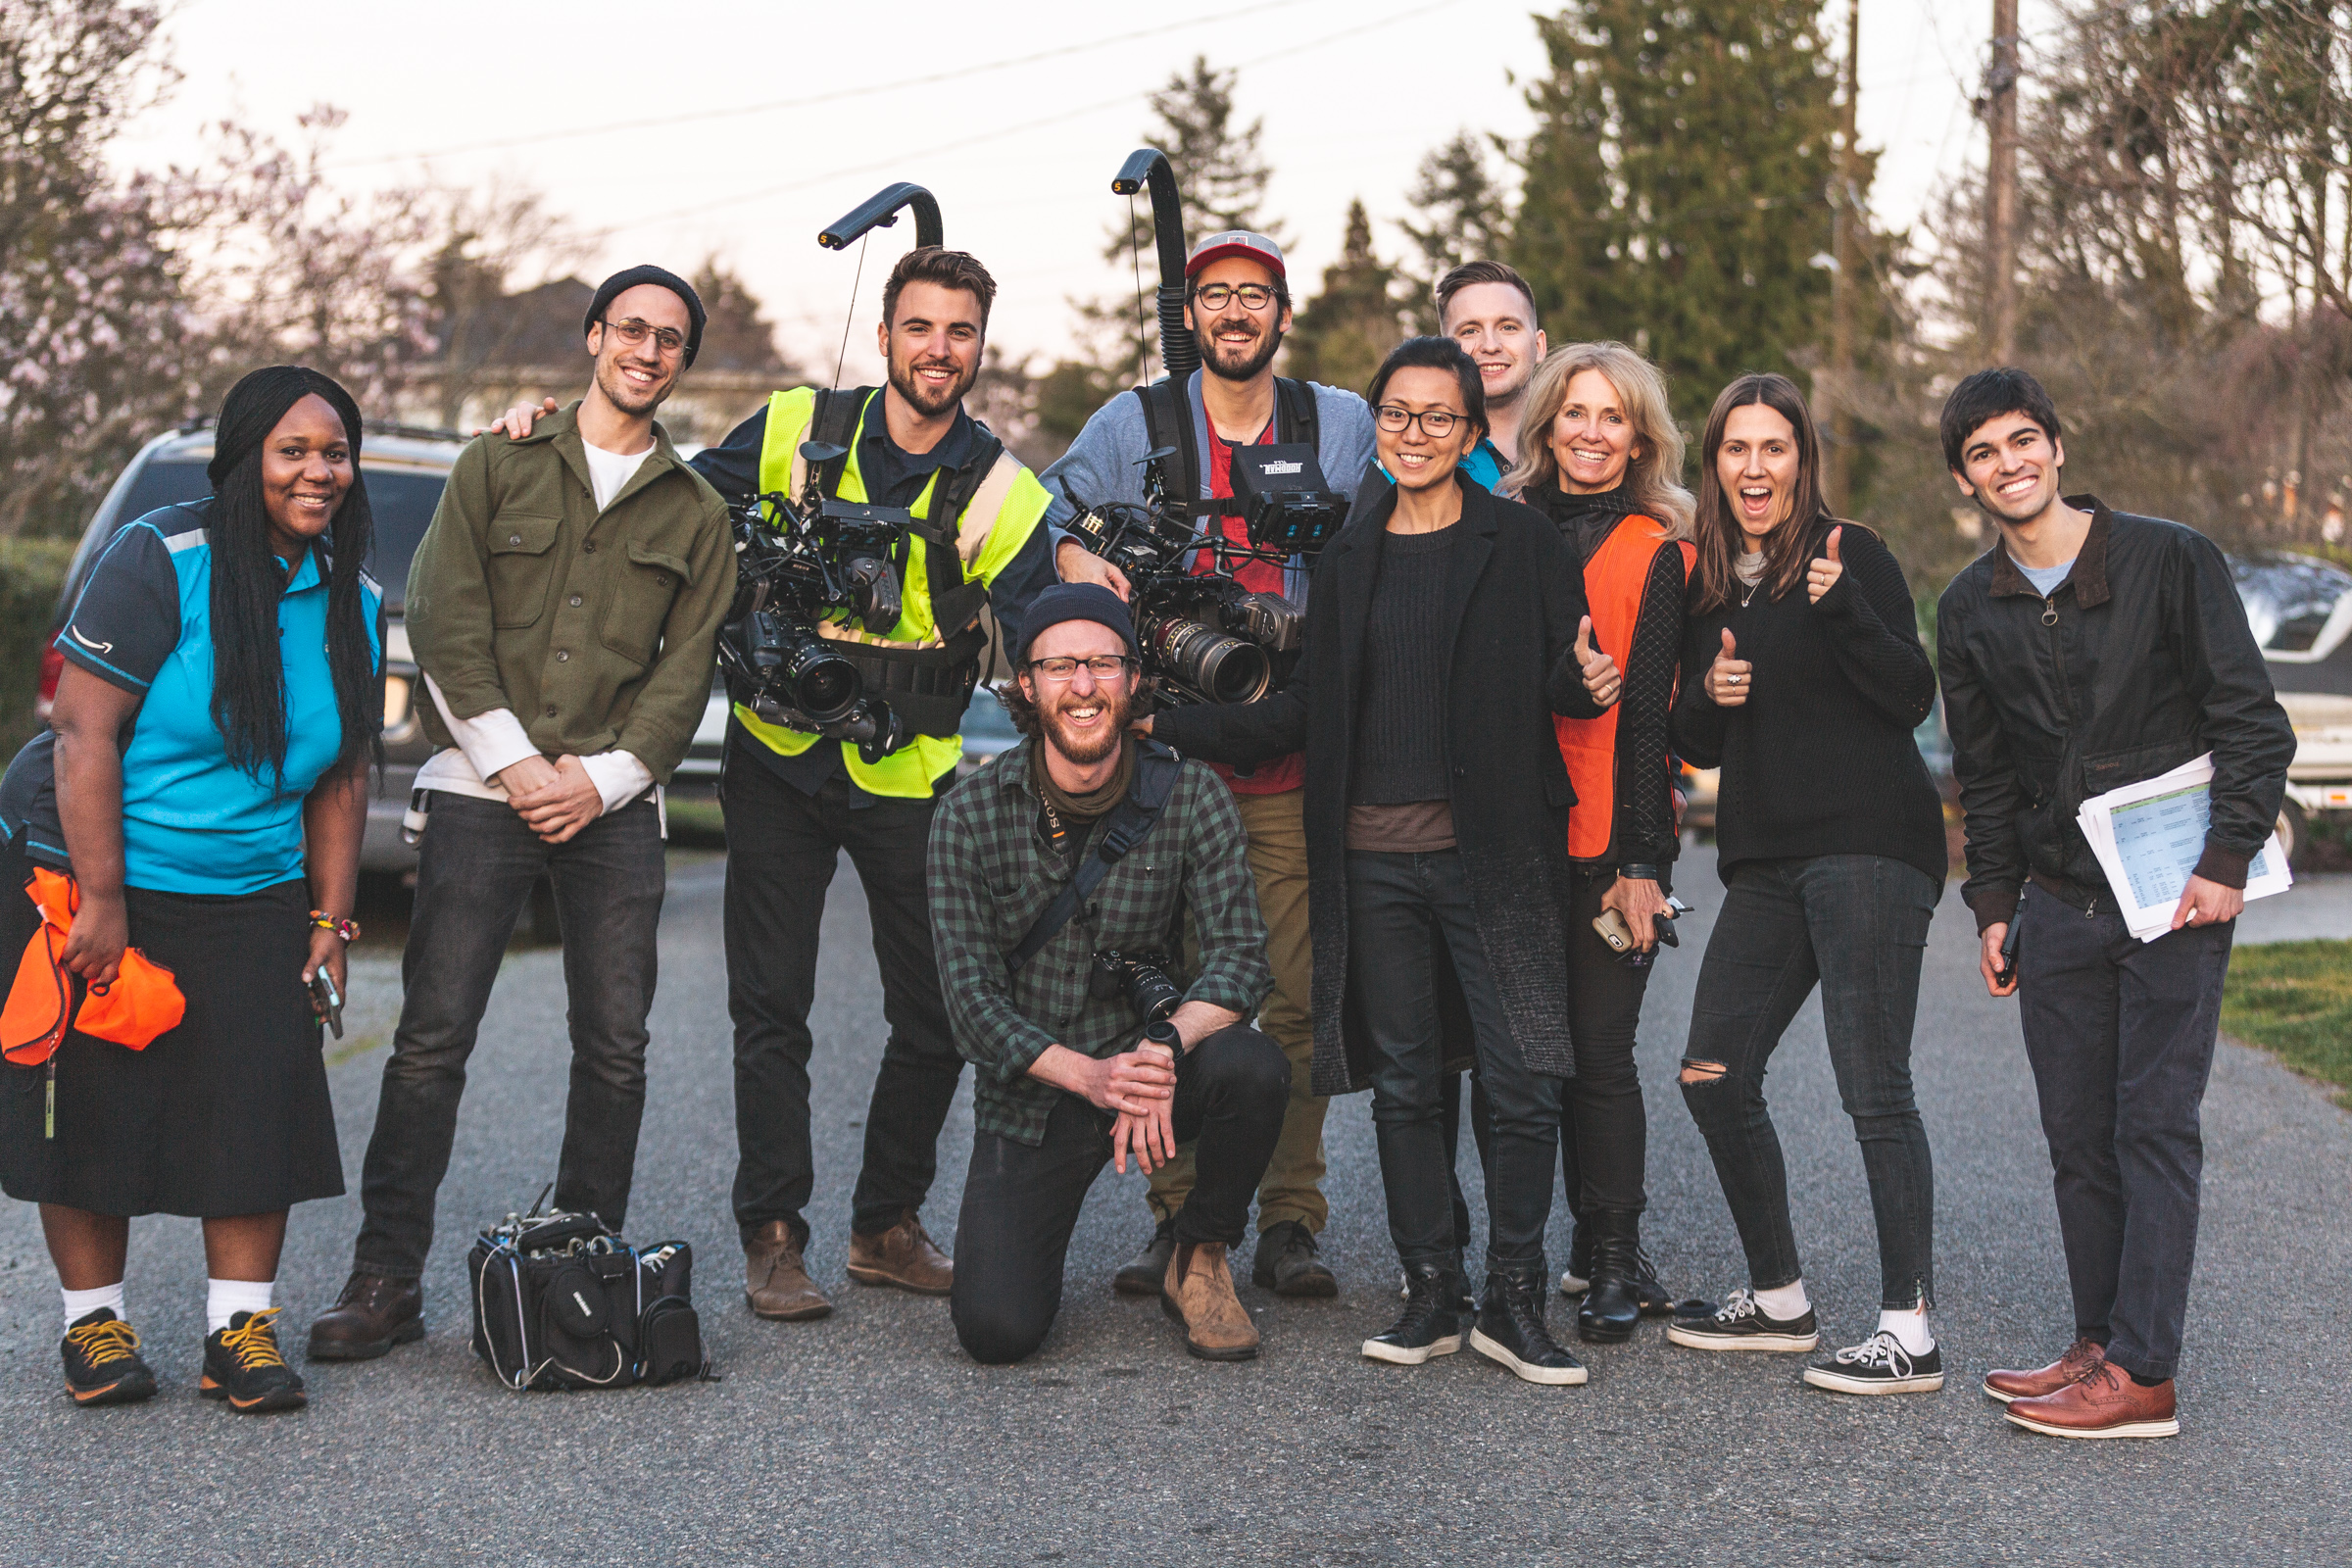 Amazon key commercial film crew Seattle Woodwalk